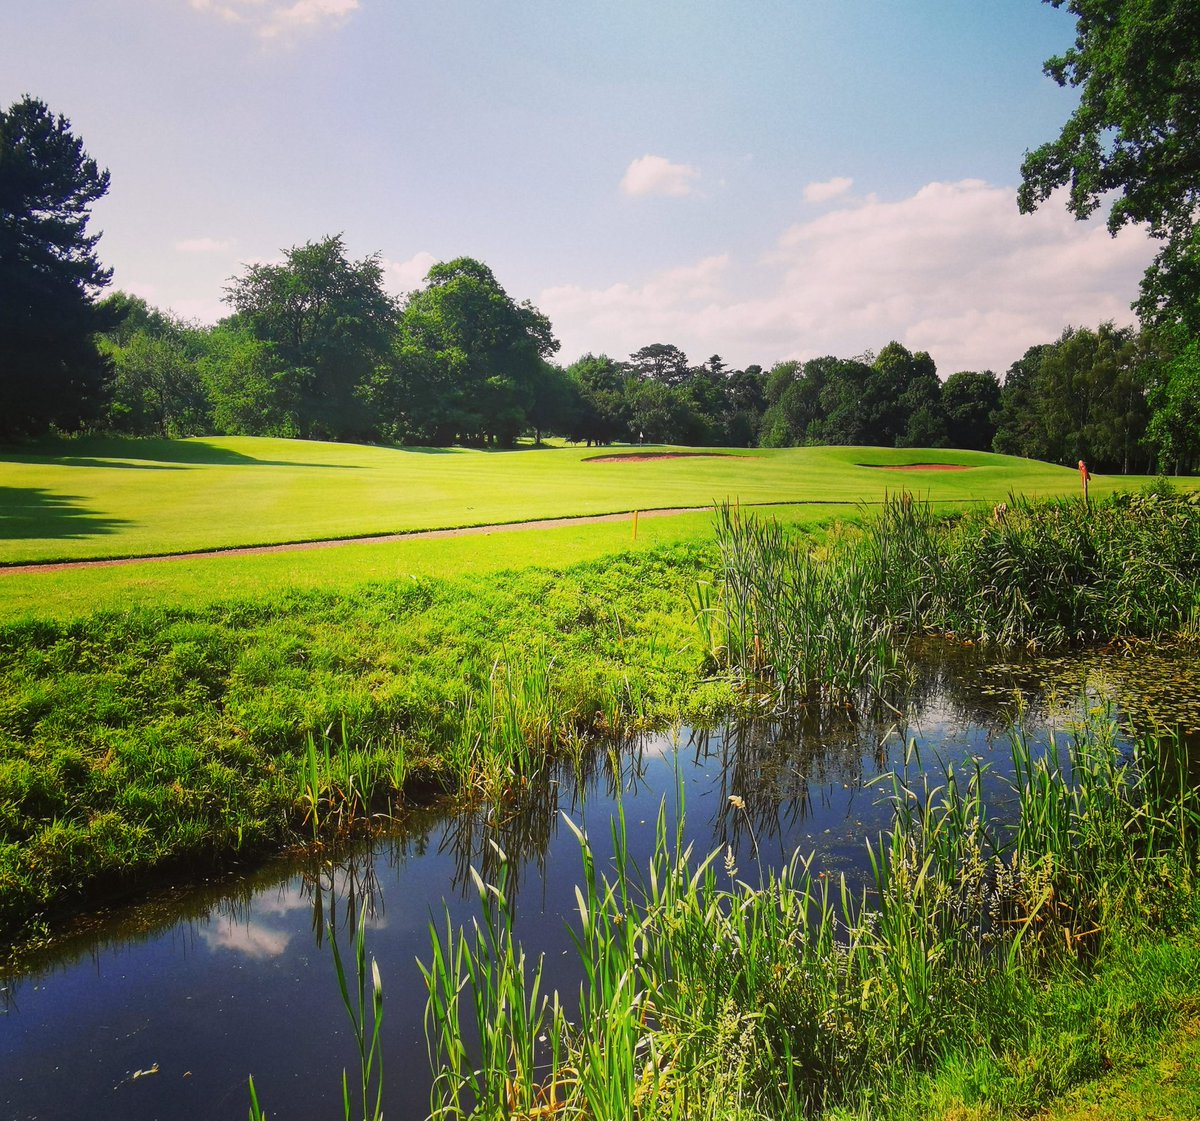 test Twitter Media - #HOT 😍⛳  And the weather is pretty warm too 😉  #pictureperfect #perfection #landscape #hottest #hotter #water #pond #golfcourse #golfing #golfers #waterhazard #sunny #warm #summer @MidlandsGolfer @robrockgolftour @IPGCourseupdate https://t.co/5s1QaalHNg